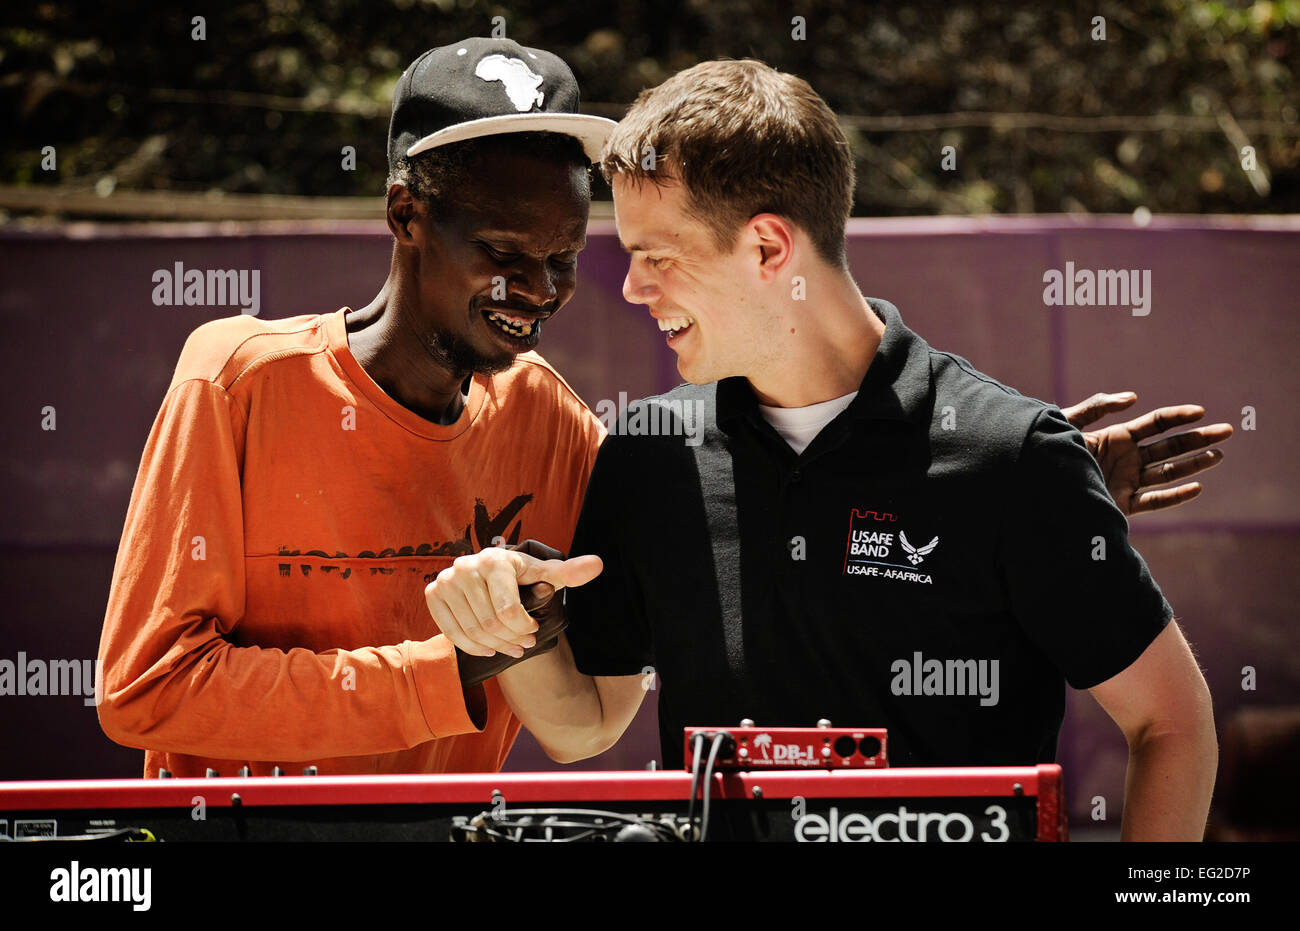 Senior Airman Mike Mitchell laughs with a Senegalese musician during a concert June 14, 2014, at a local cultural - Stock Image